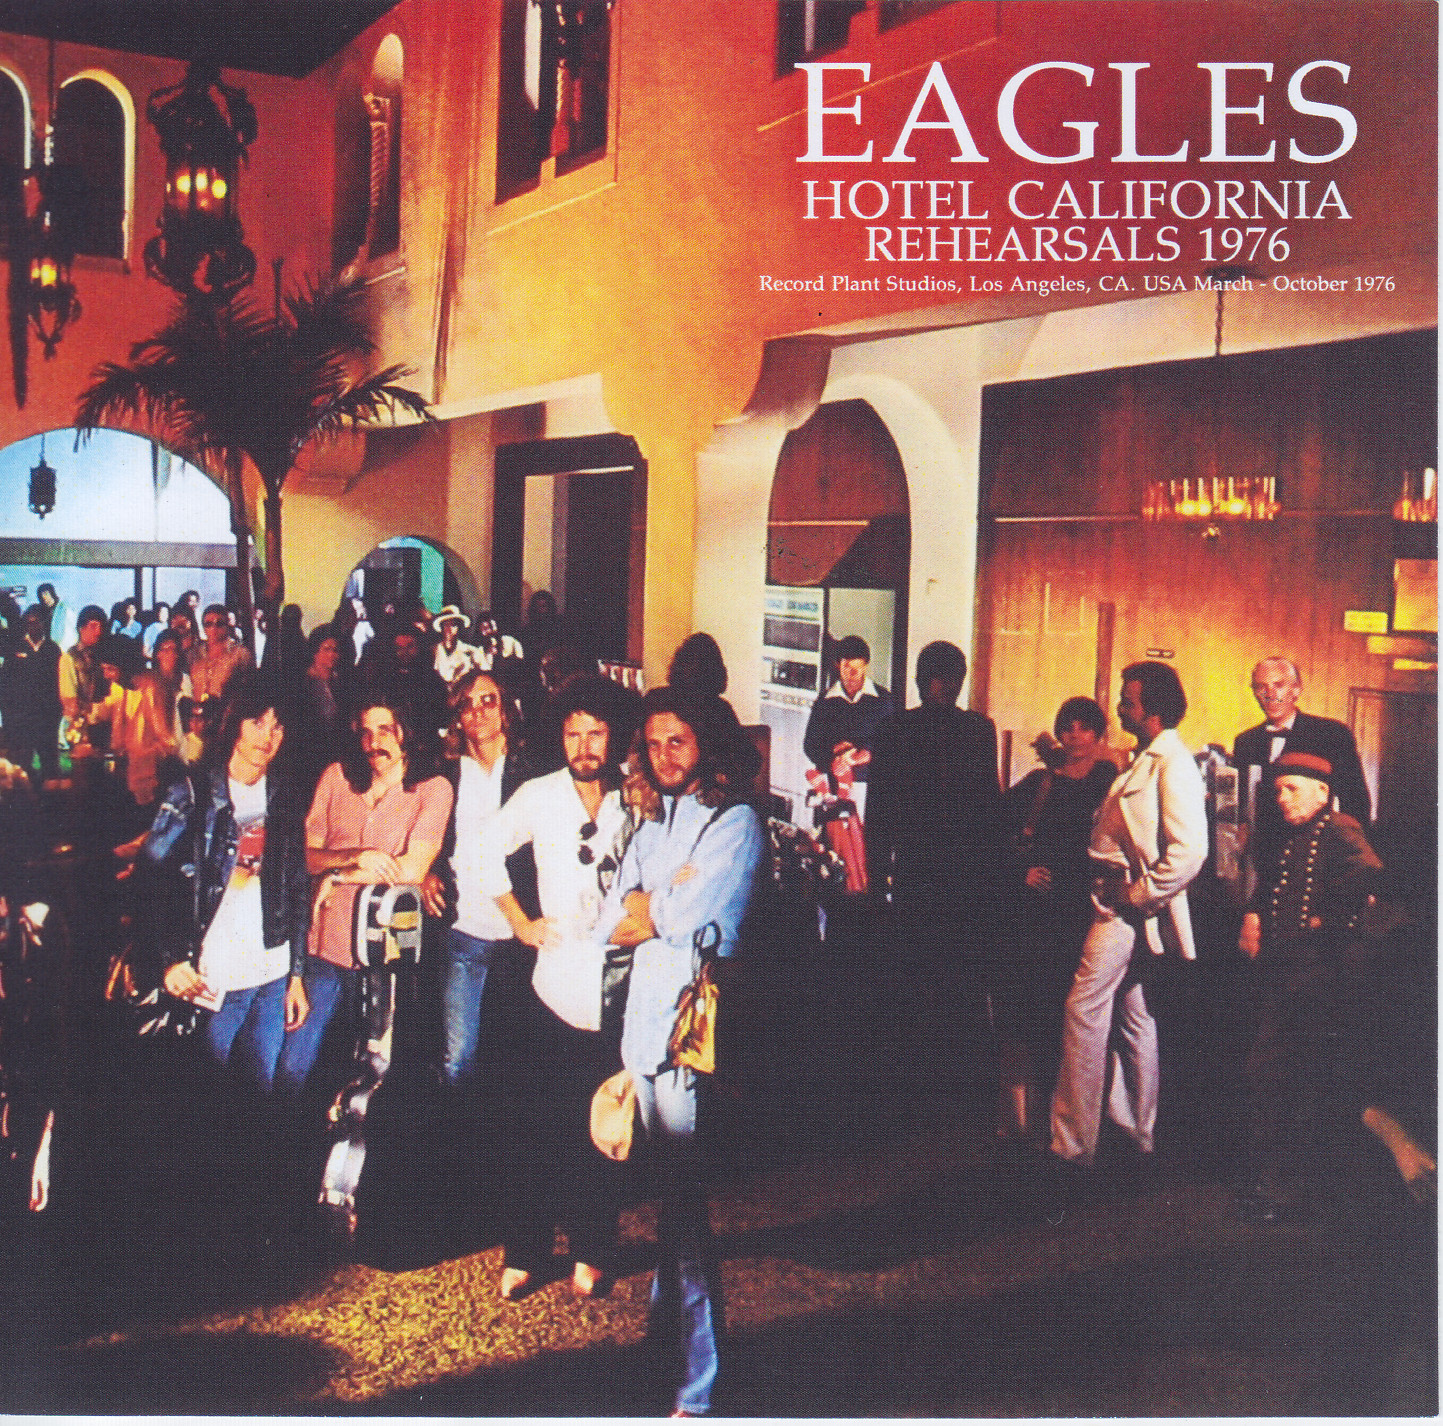 eagles hotel california rehearsals 1976 1cdr giginjapan. Black Bedroom Furniture Sets. Home Design Ideas